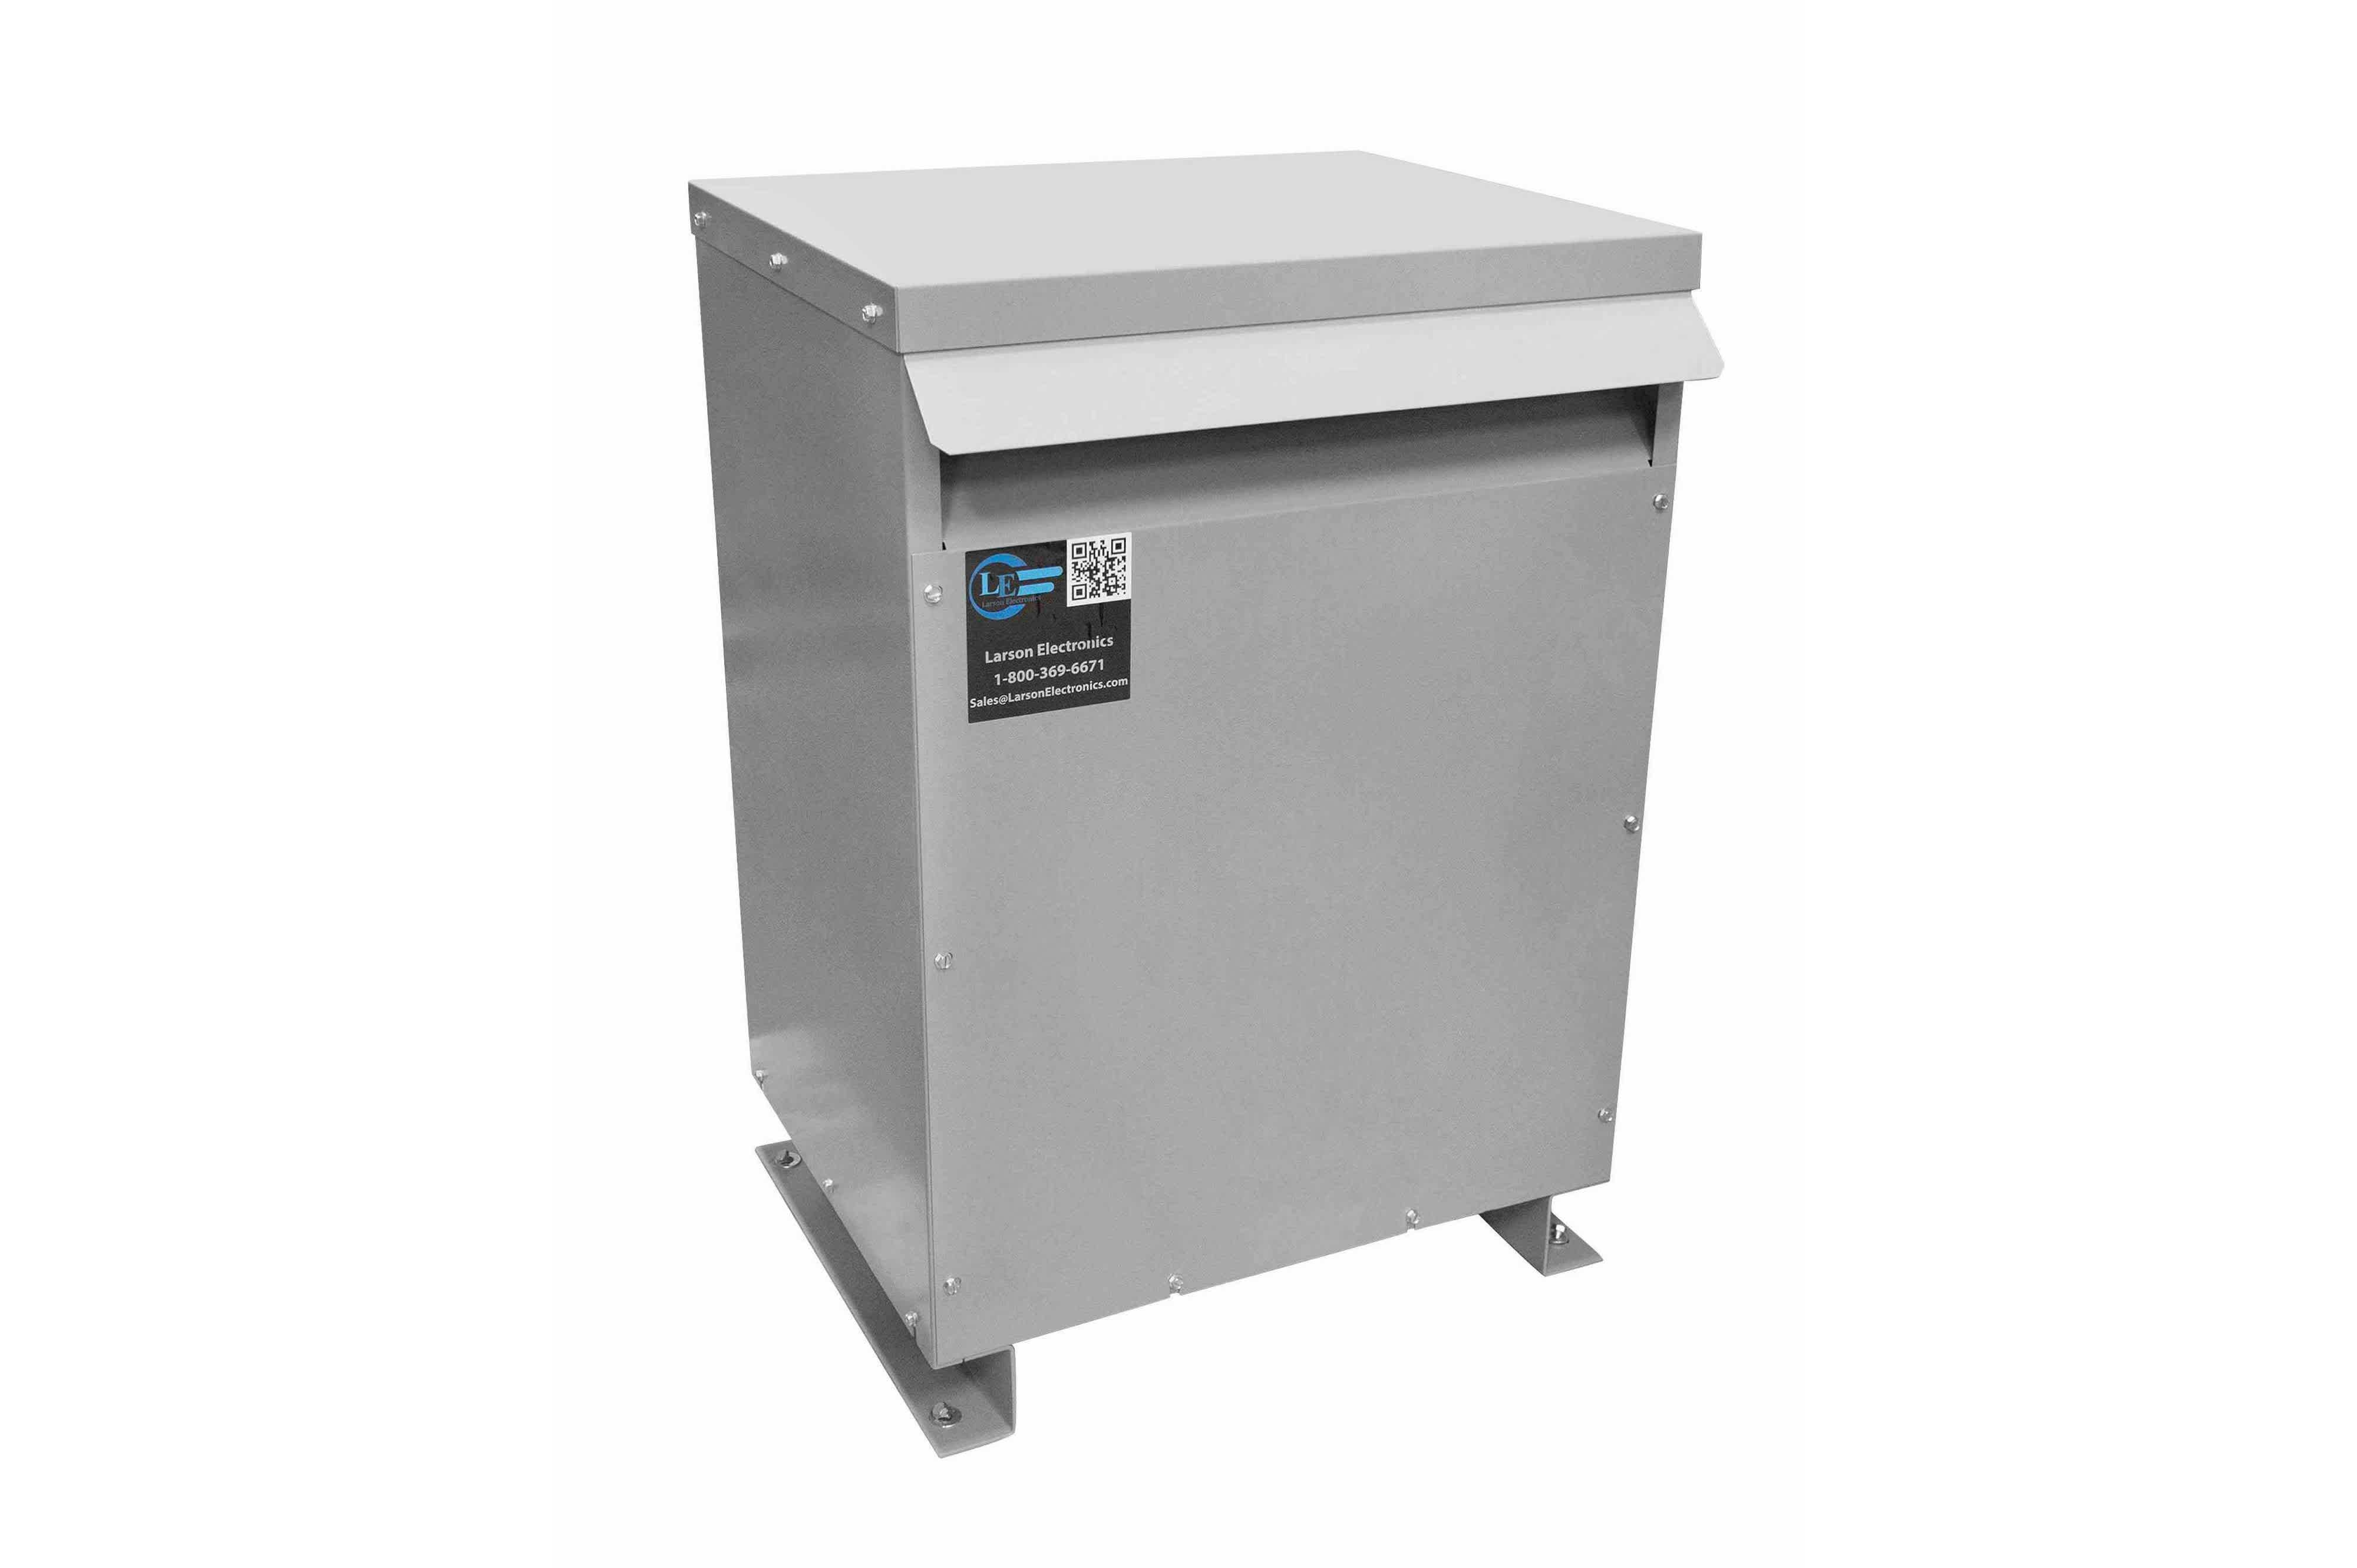 50 kVA 3PH Isolation Transformer, 600V Wye Primary, 380Y/220 Wye-N Secondary, N3R, Ventilated, 60 Hz